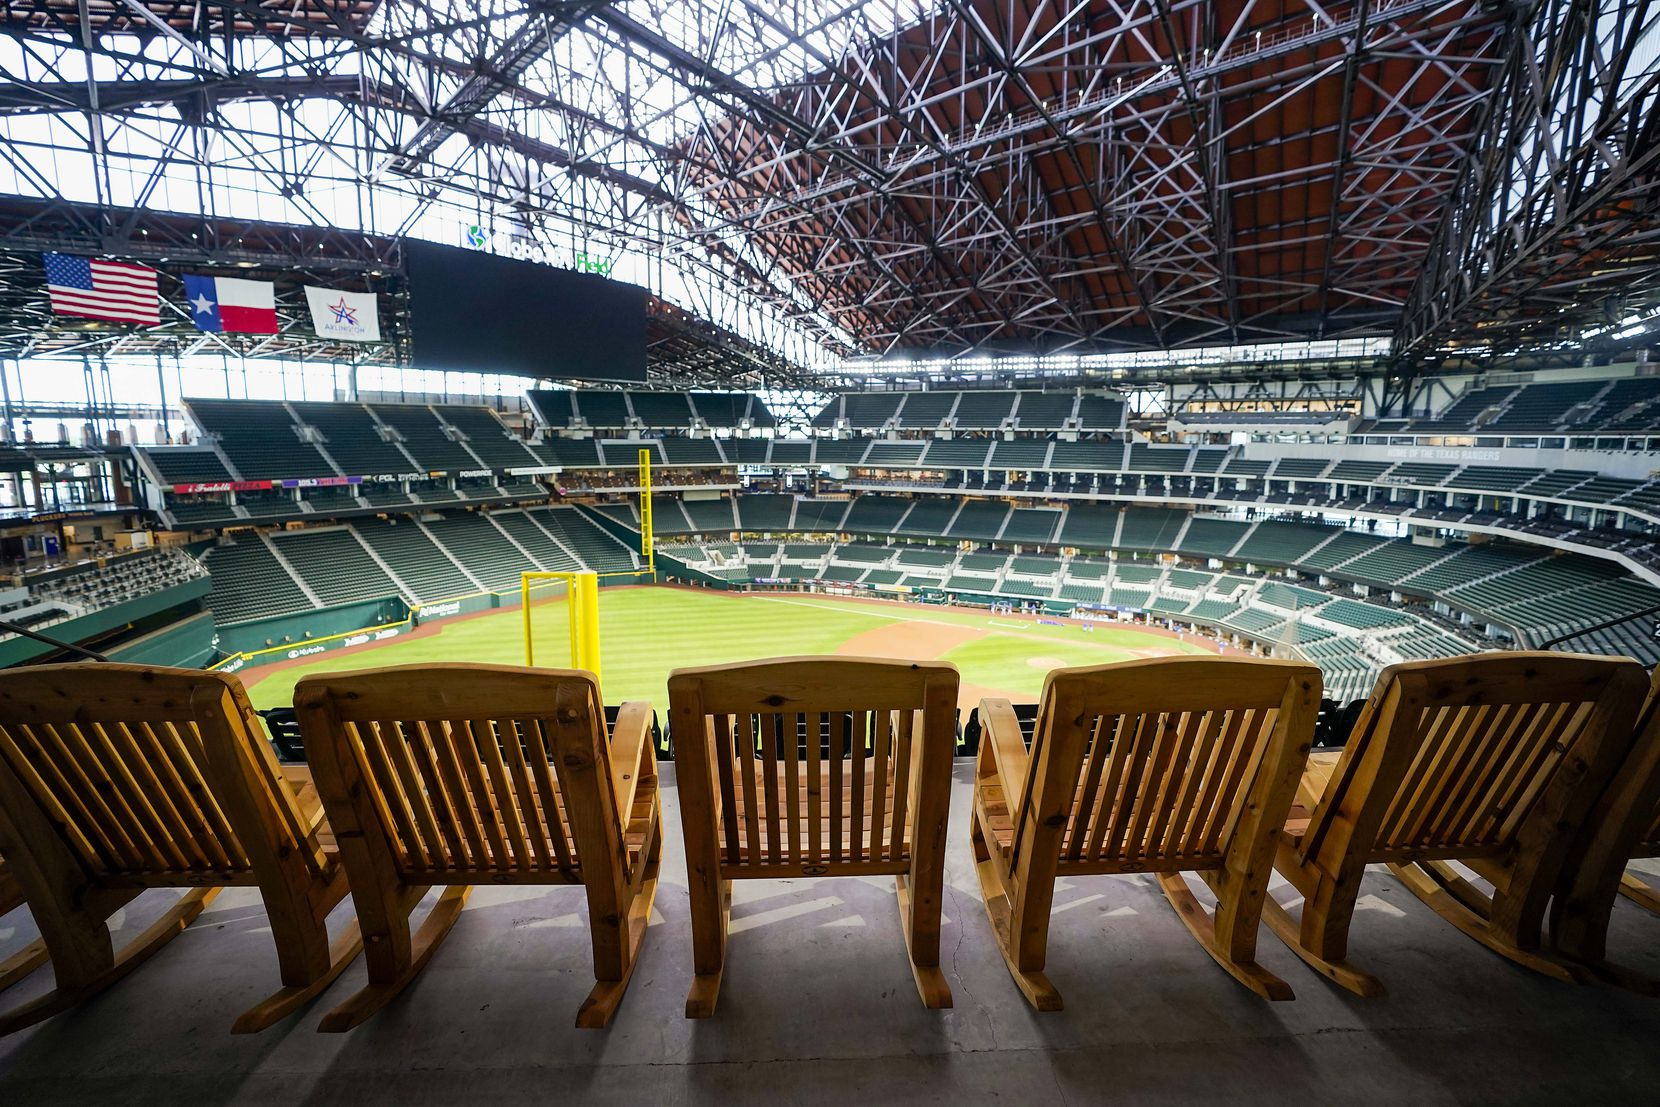 As the baseball season gets underway, the Sky Porch rocking chairs and, well, all other fan seats at Globe Life Field will be vacant as teams play in empty stadiums.